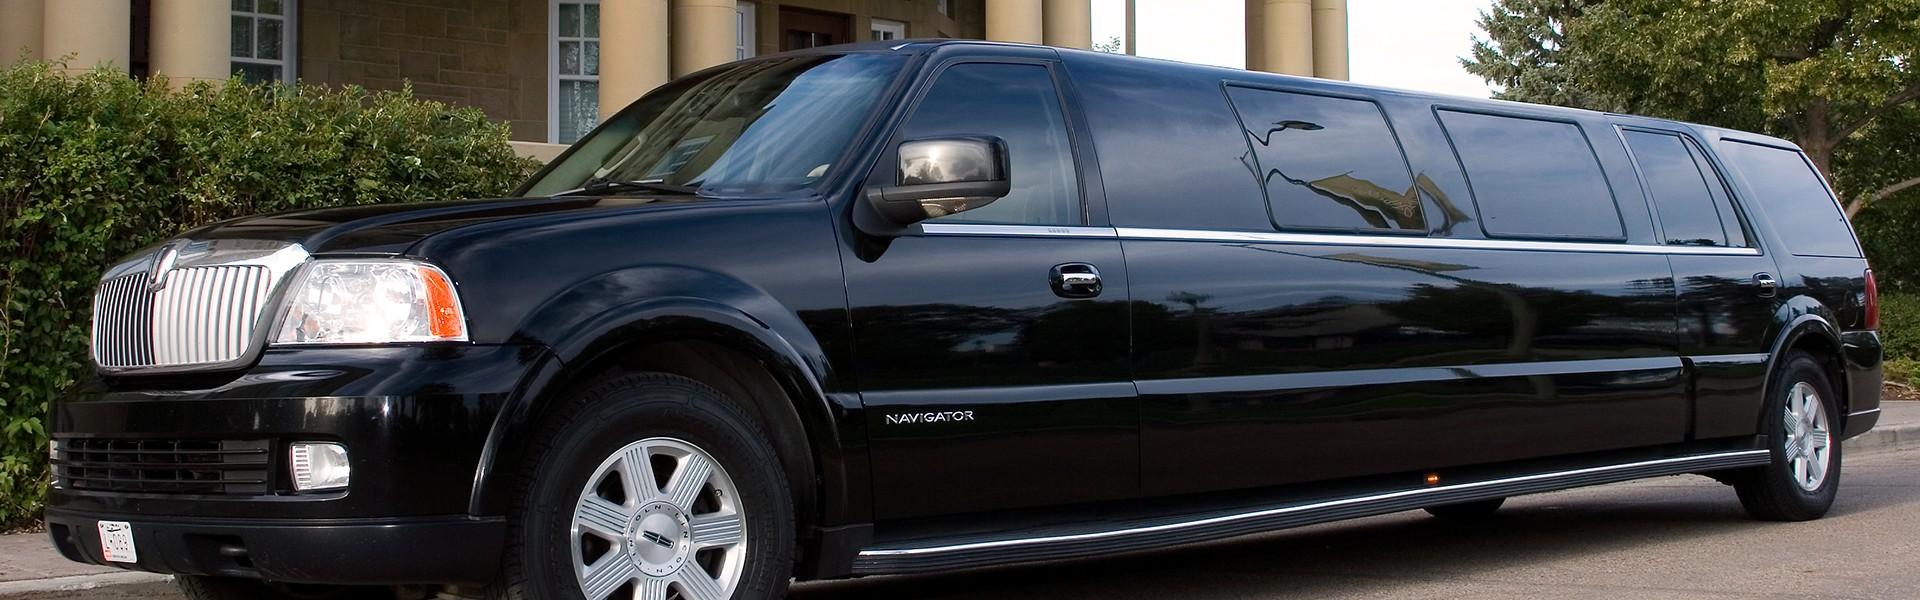 Executive Express: Stretch Lincoln Navigator - VIP Limousines, Edmonton